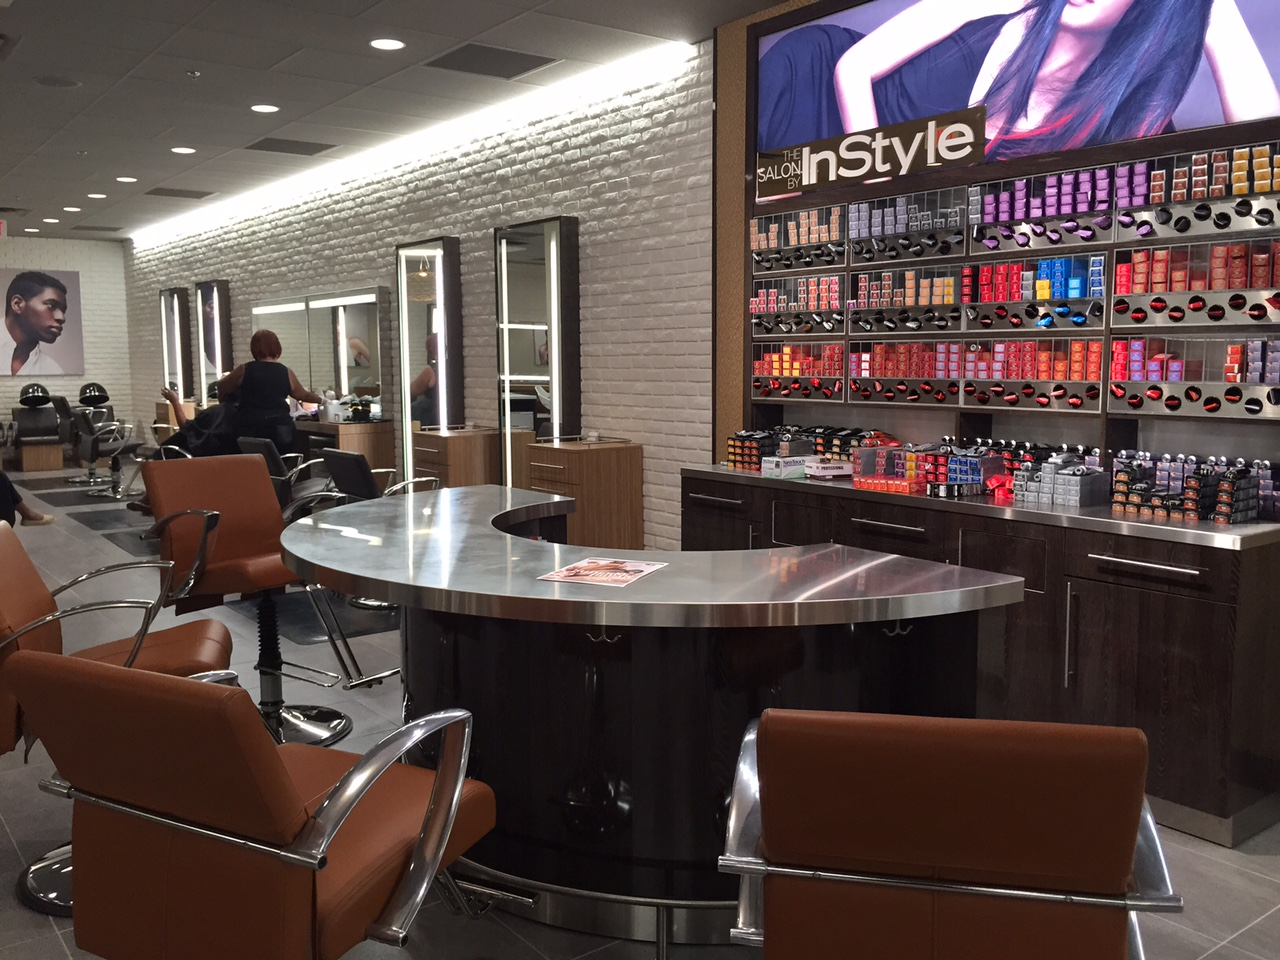 Jc Penneys New Salon By Instyle Magazine Debuts Jc Penney